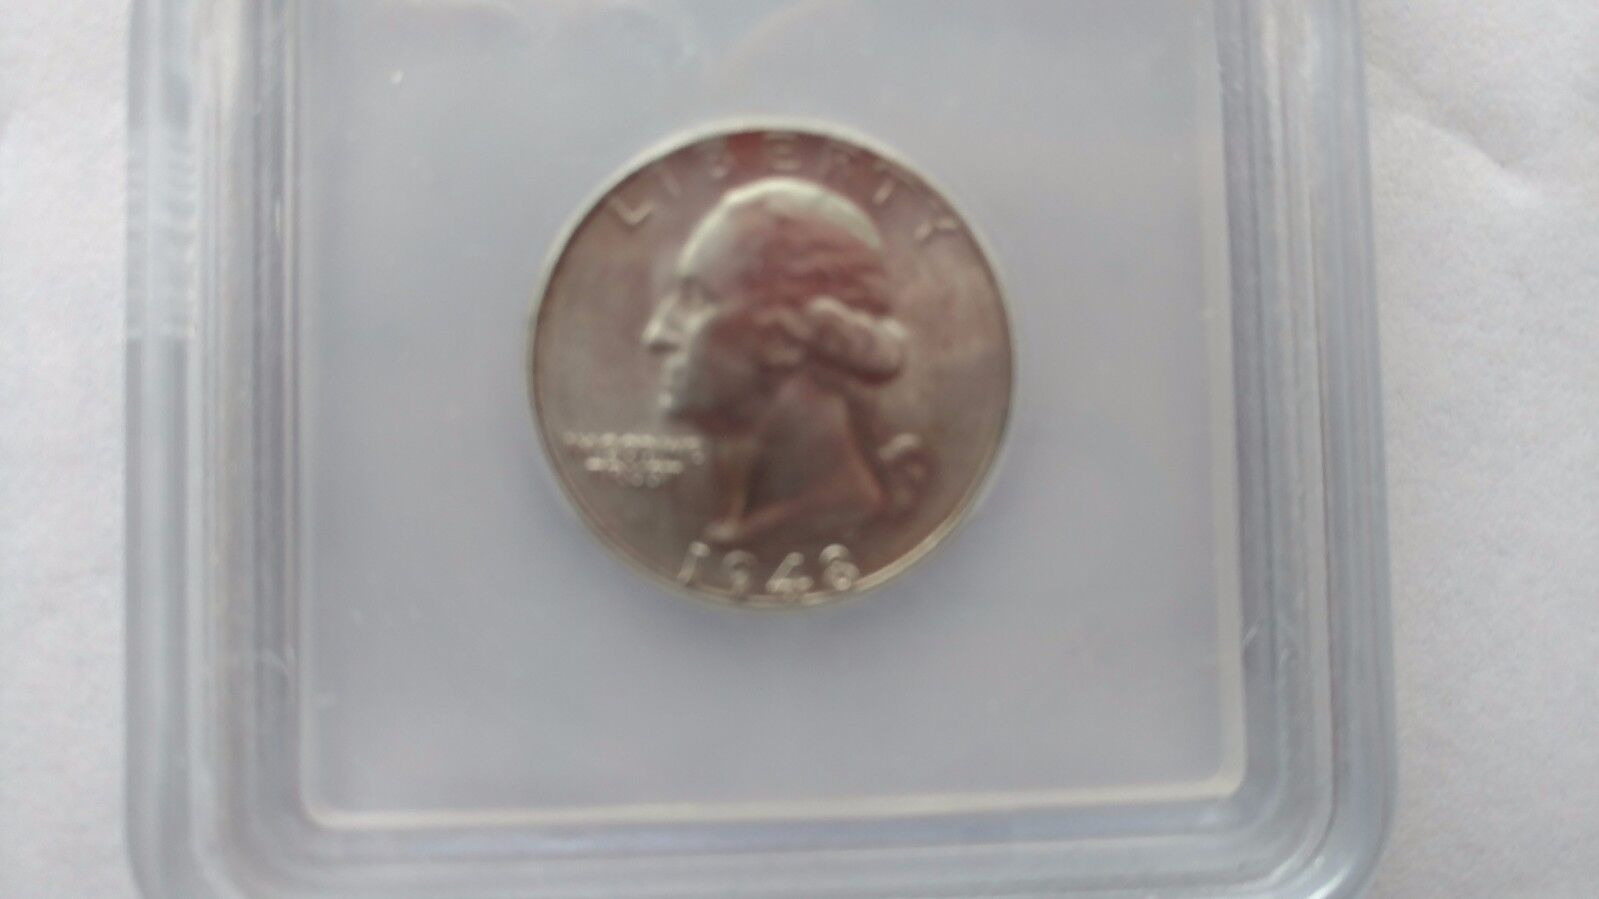 1948-S WASHINGTON QUARTER 25 CENTS ICG MS 67 - RARE COIN IN MS 67 HARD TO FINE - $250.00